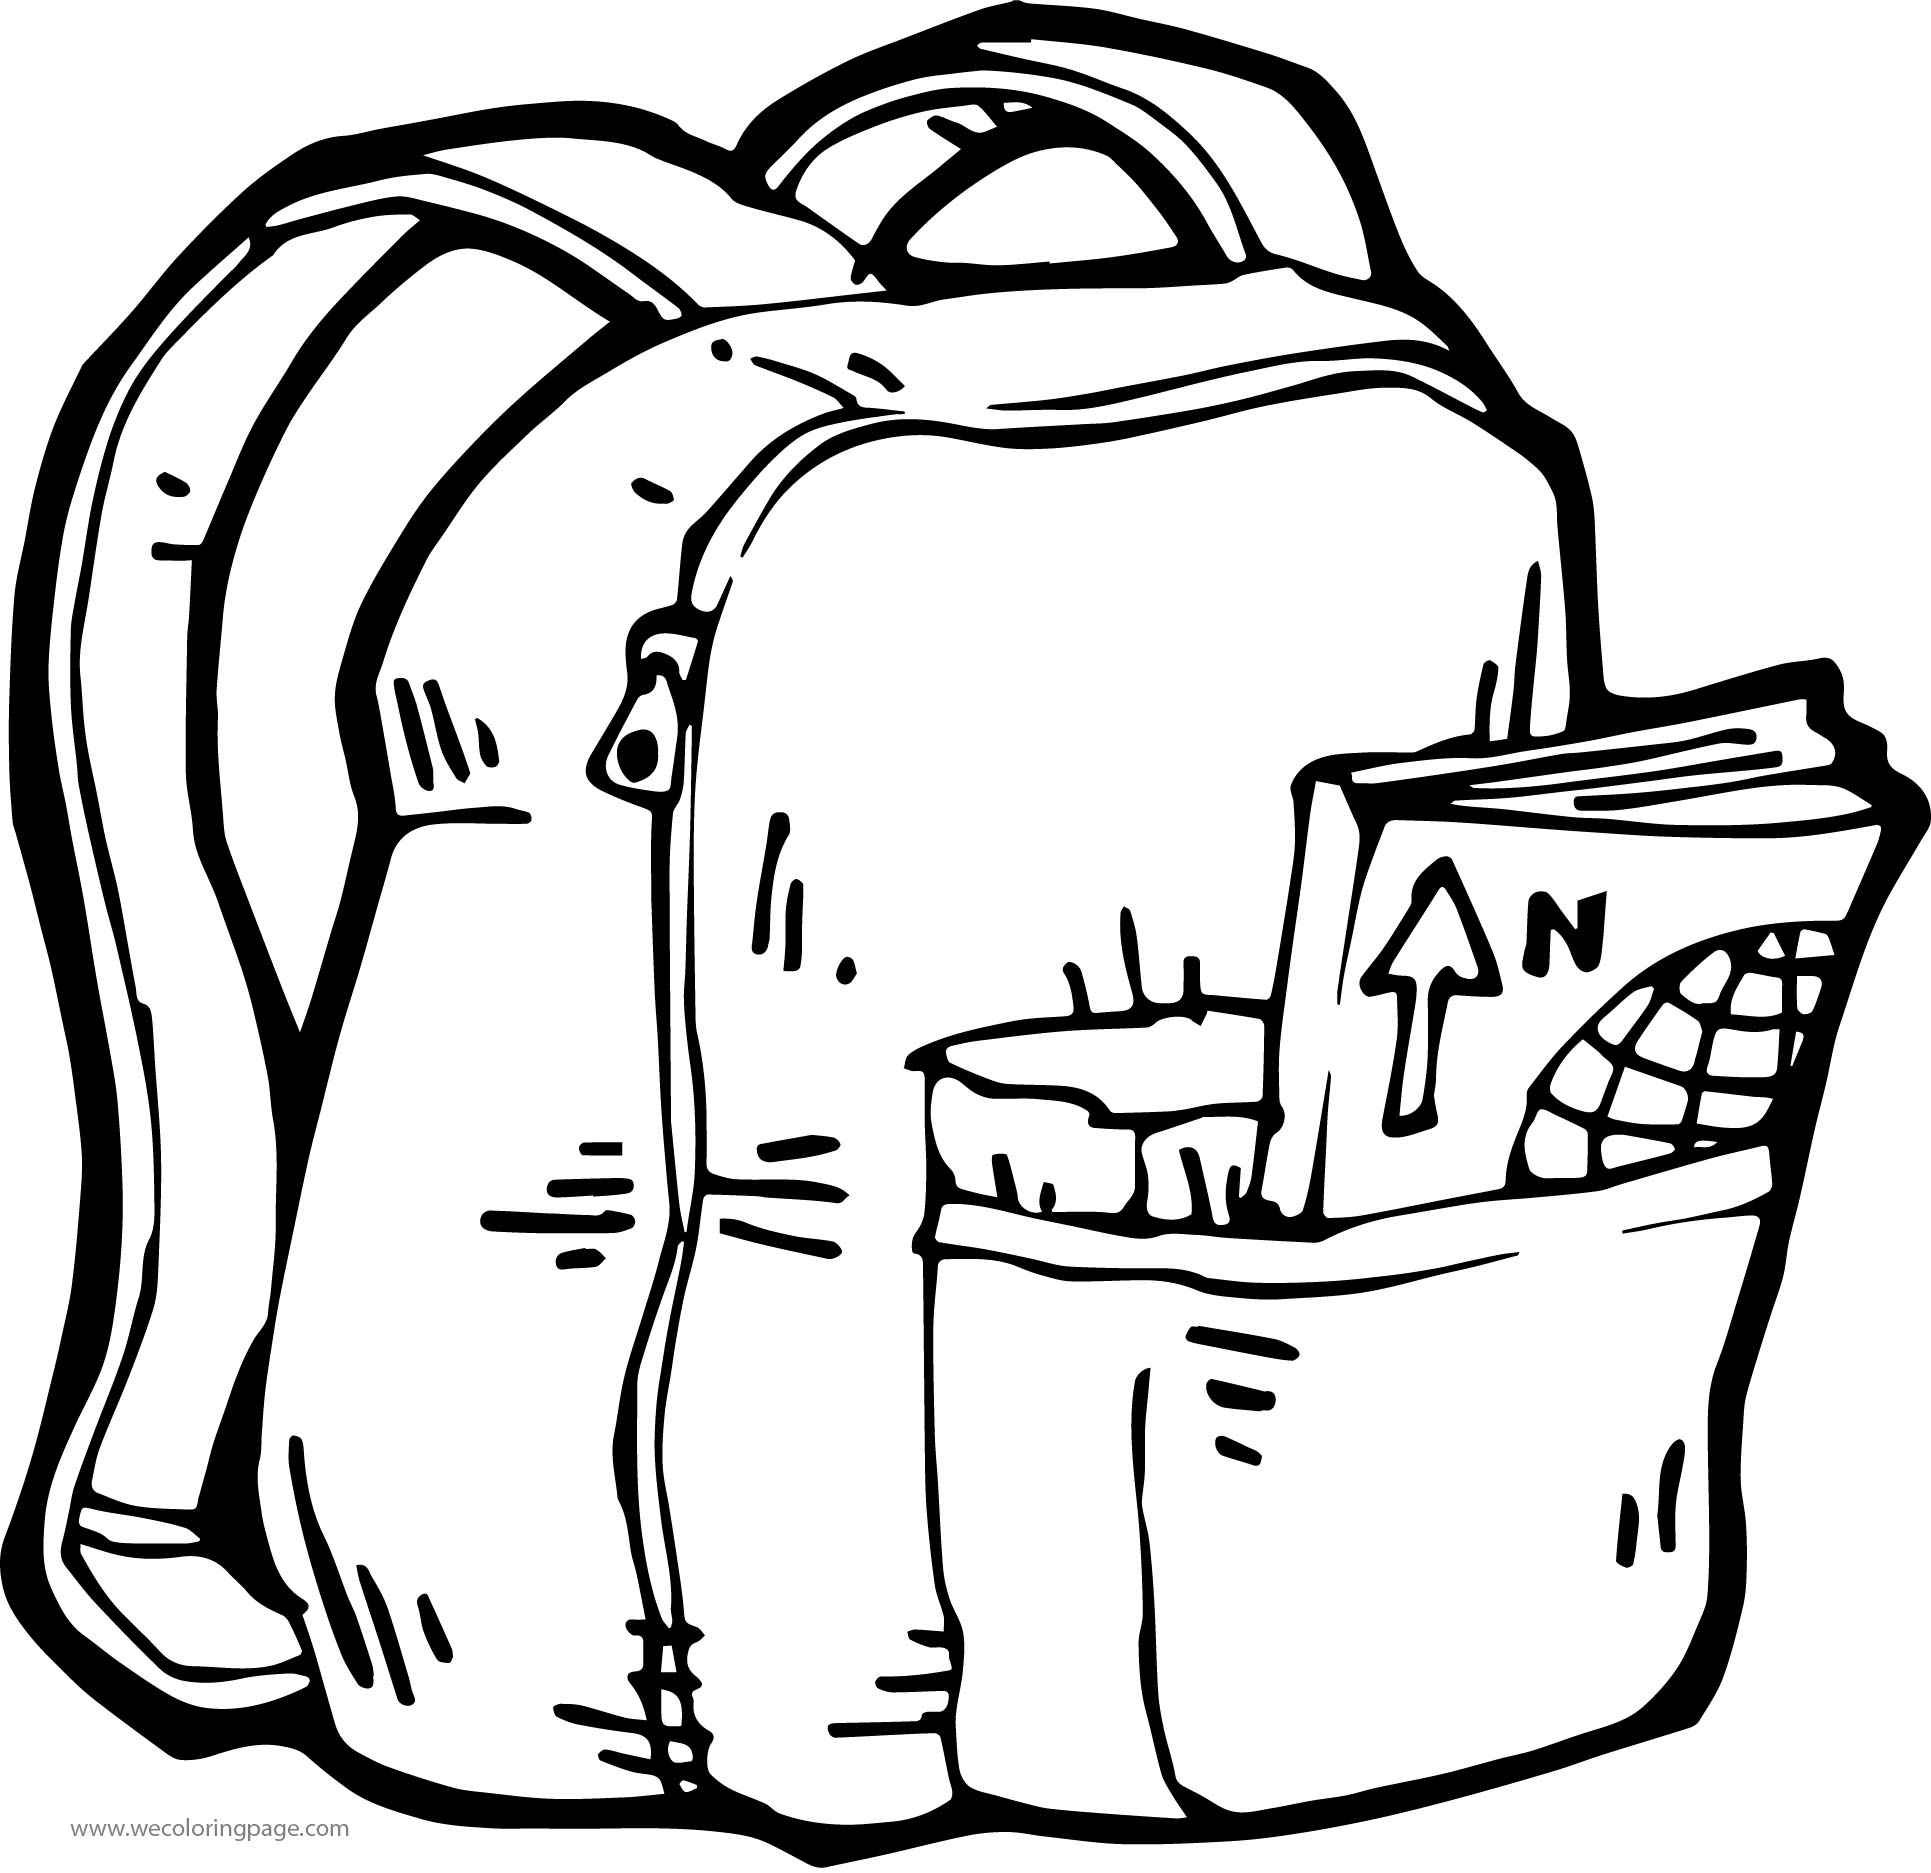 And School Bag Coloring Page